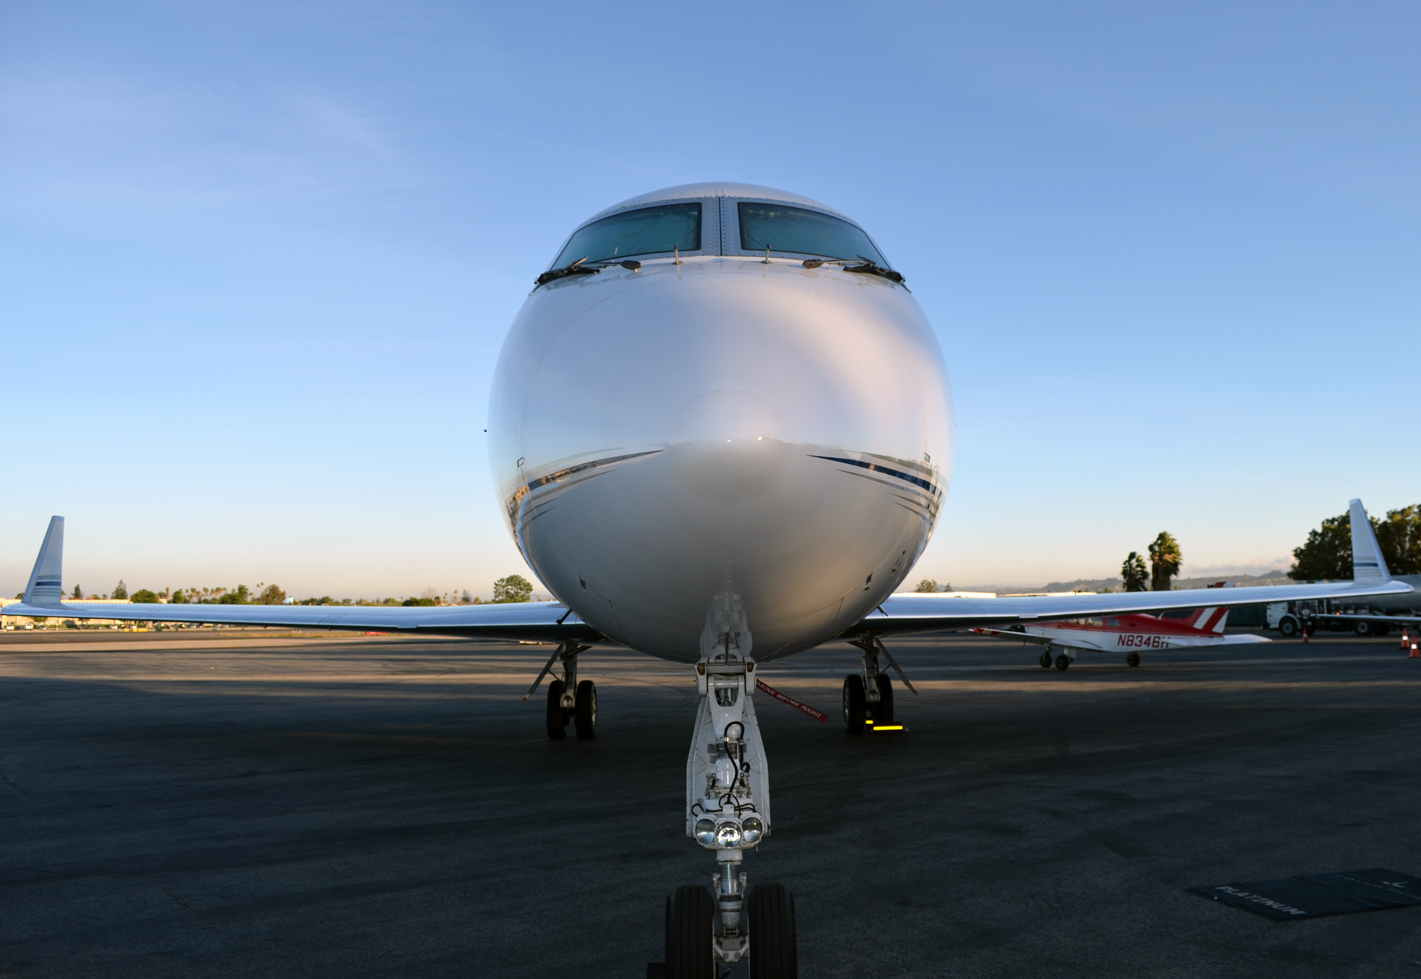 ALG Aviation Chooses The Charter Portal As Its Sole Agent